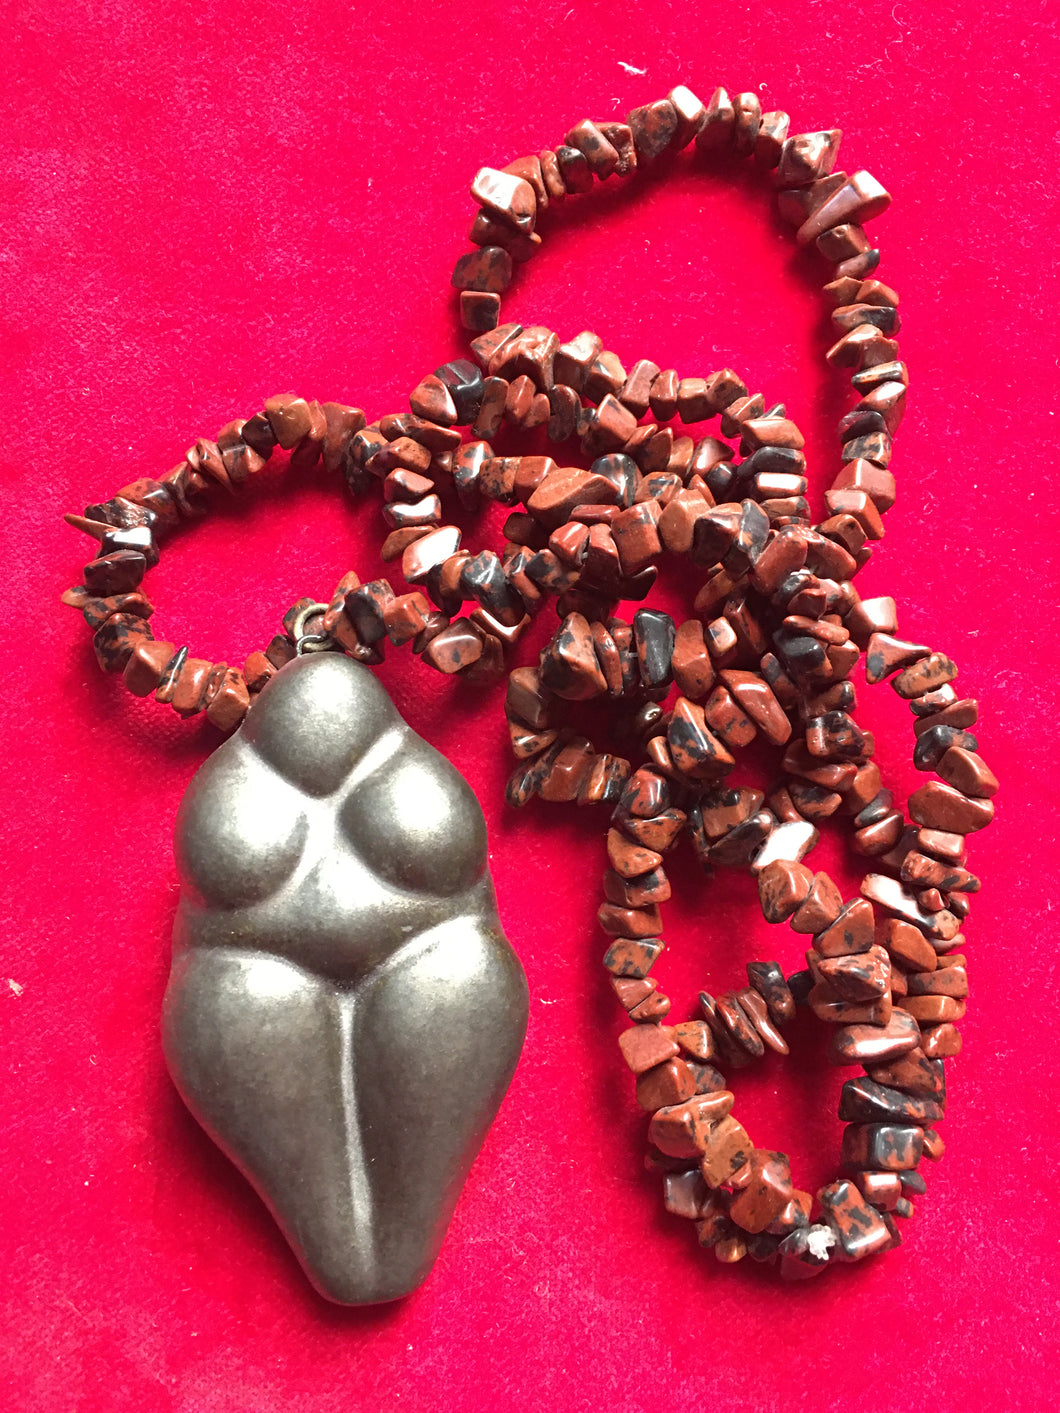 Ocarina flute metallic glaze goddess with jasper stone bead necklace